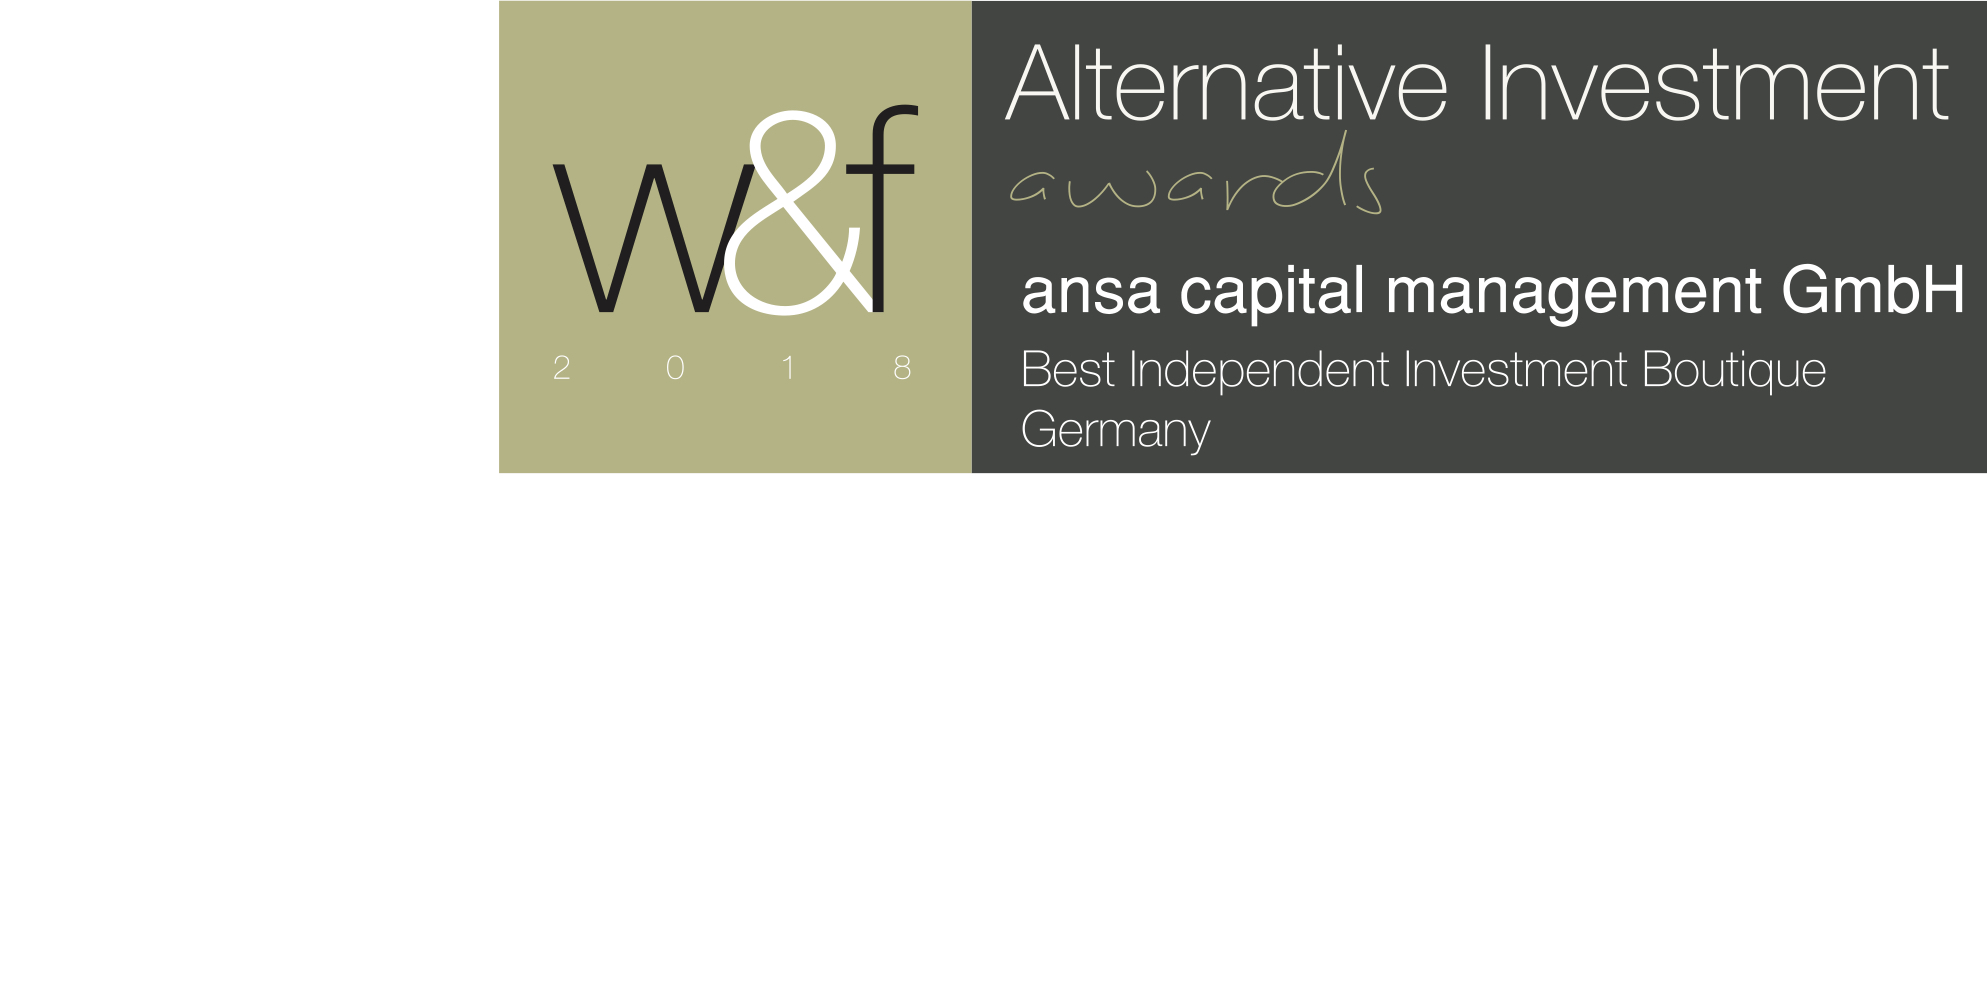 Best Independent Investment Boutique - Germany